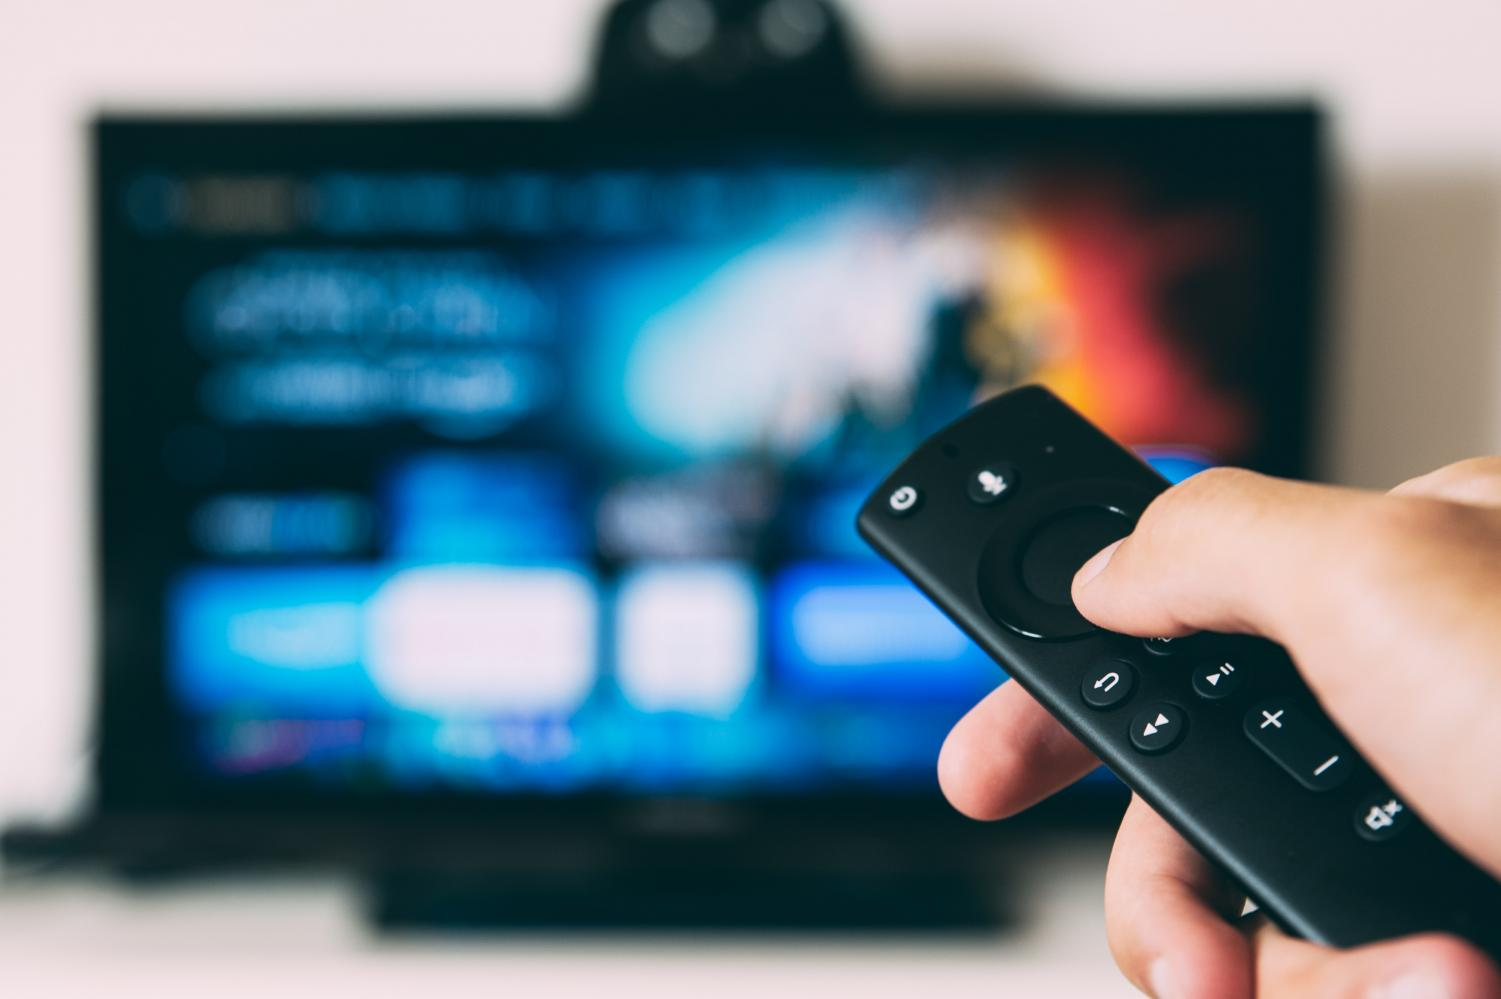 Some streaming service subscribers have ditched traditional cable television in favor of on-demand wireless streaming.